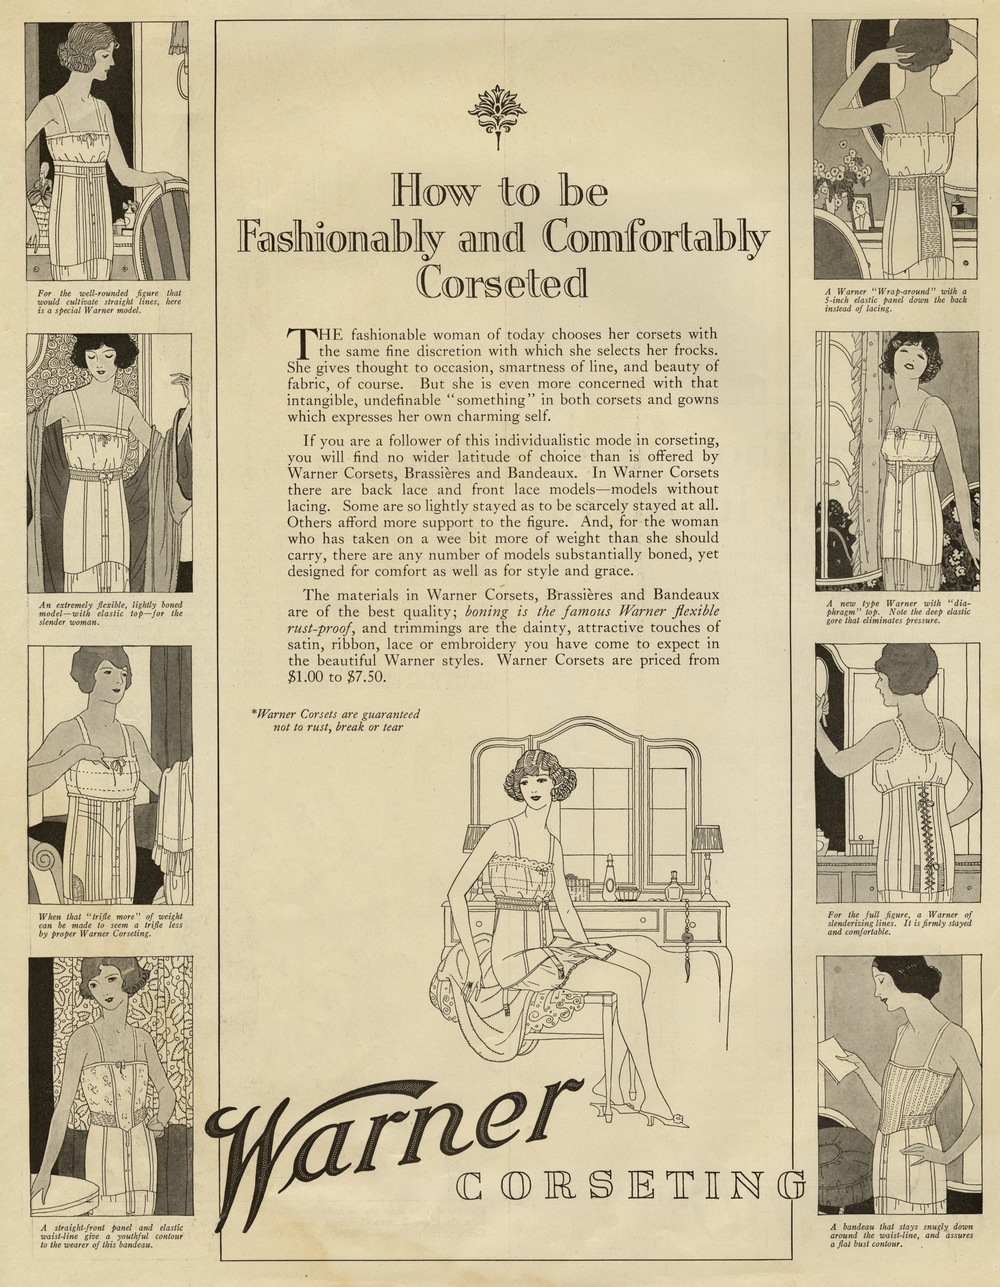 The Reeses, Print ad for Warner Corseting. Ladies Home Journal. October 1922.